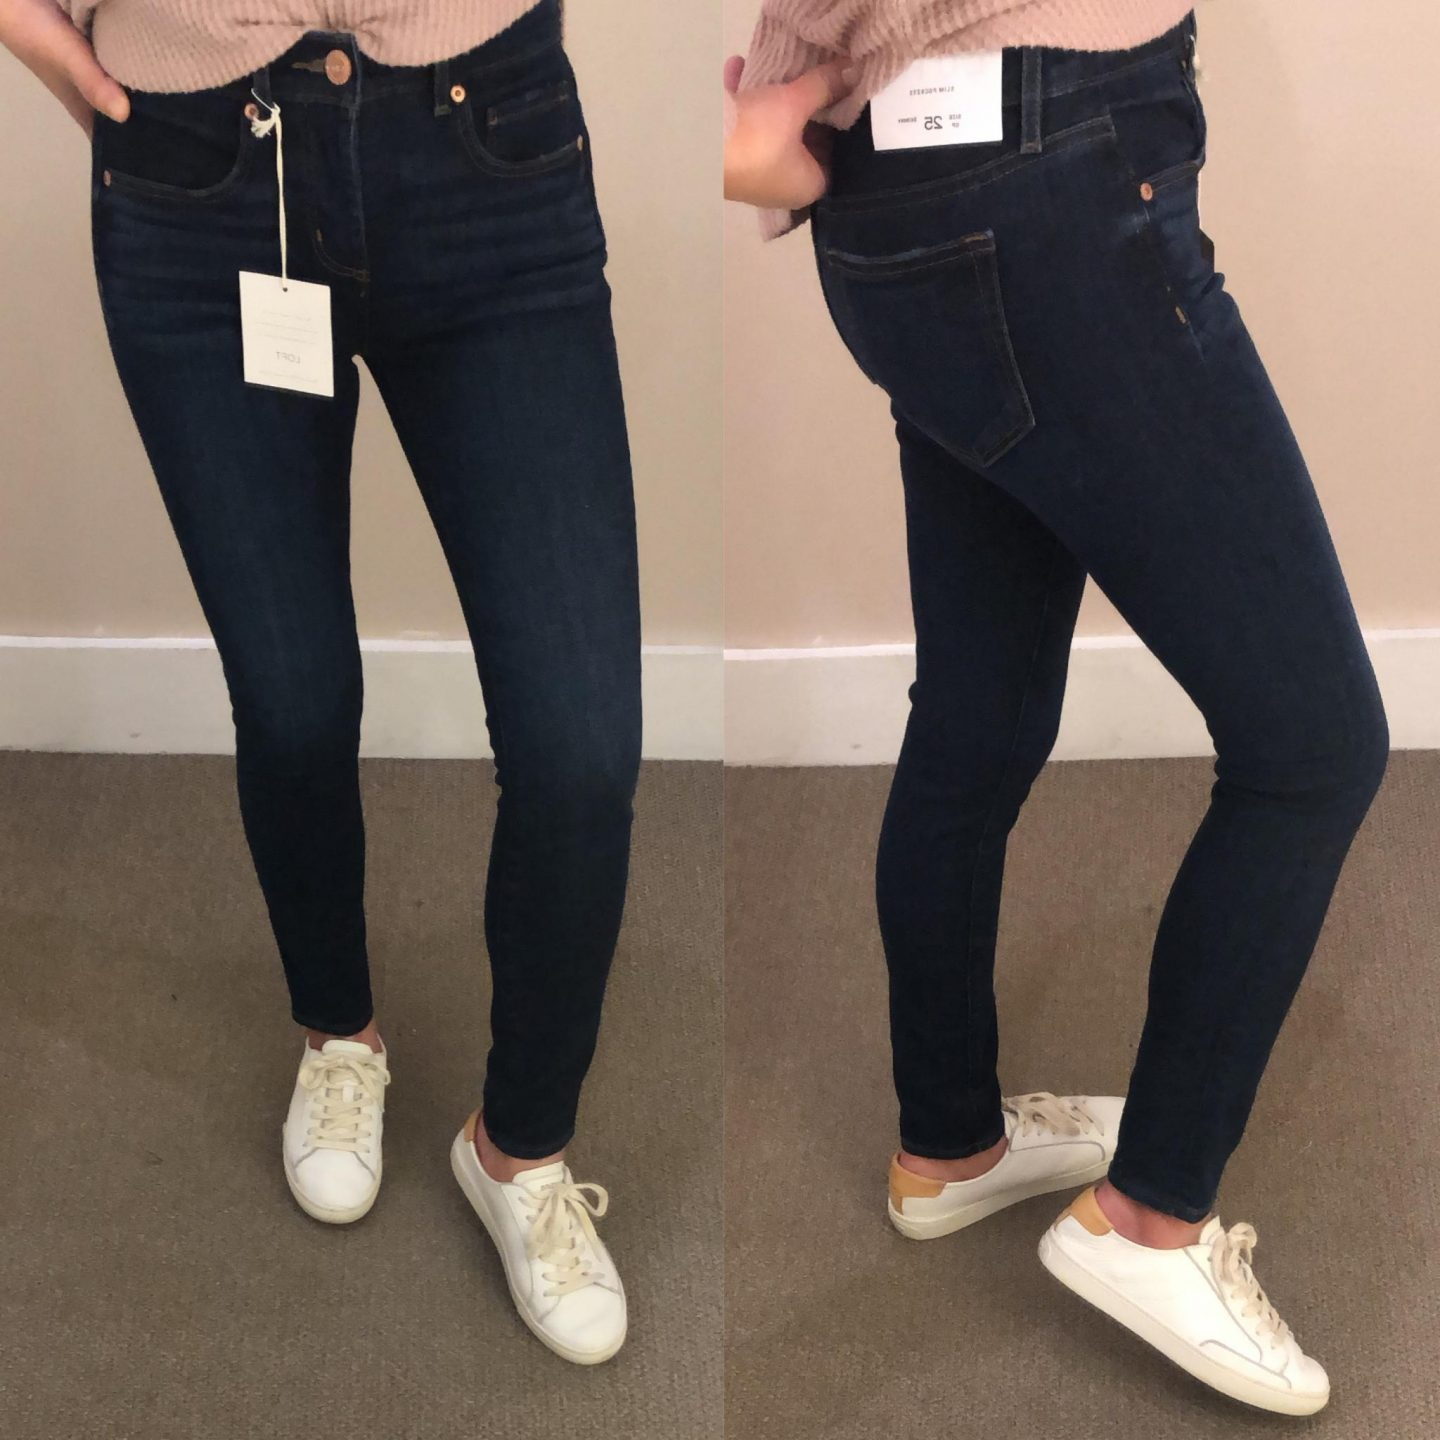 LOFT Slim Pocket Skinny Jeans in Vivid Dark Indigo Wash, size 25/0P